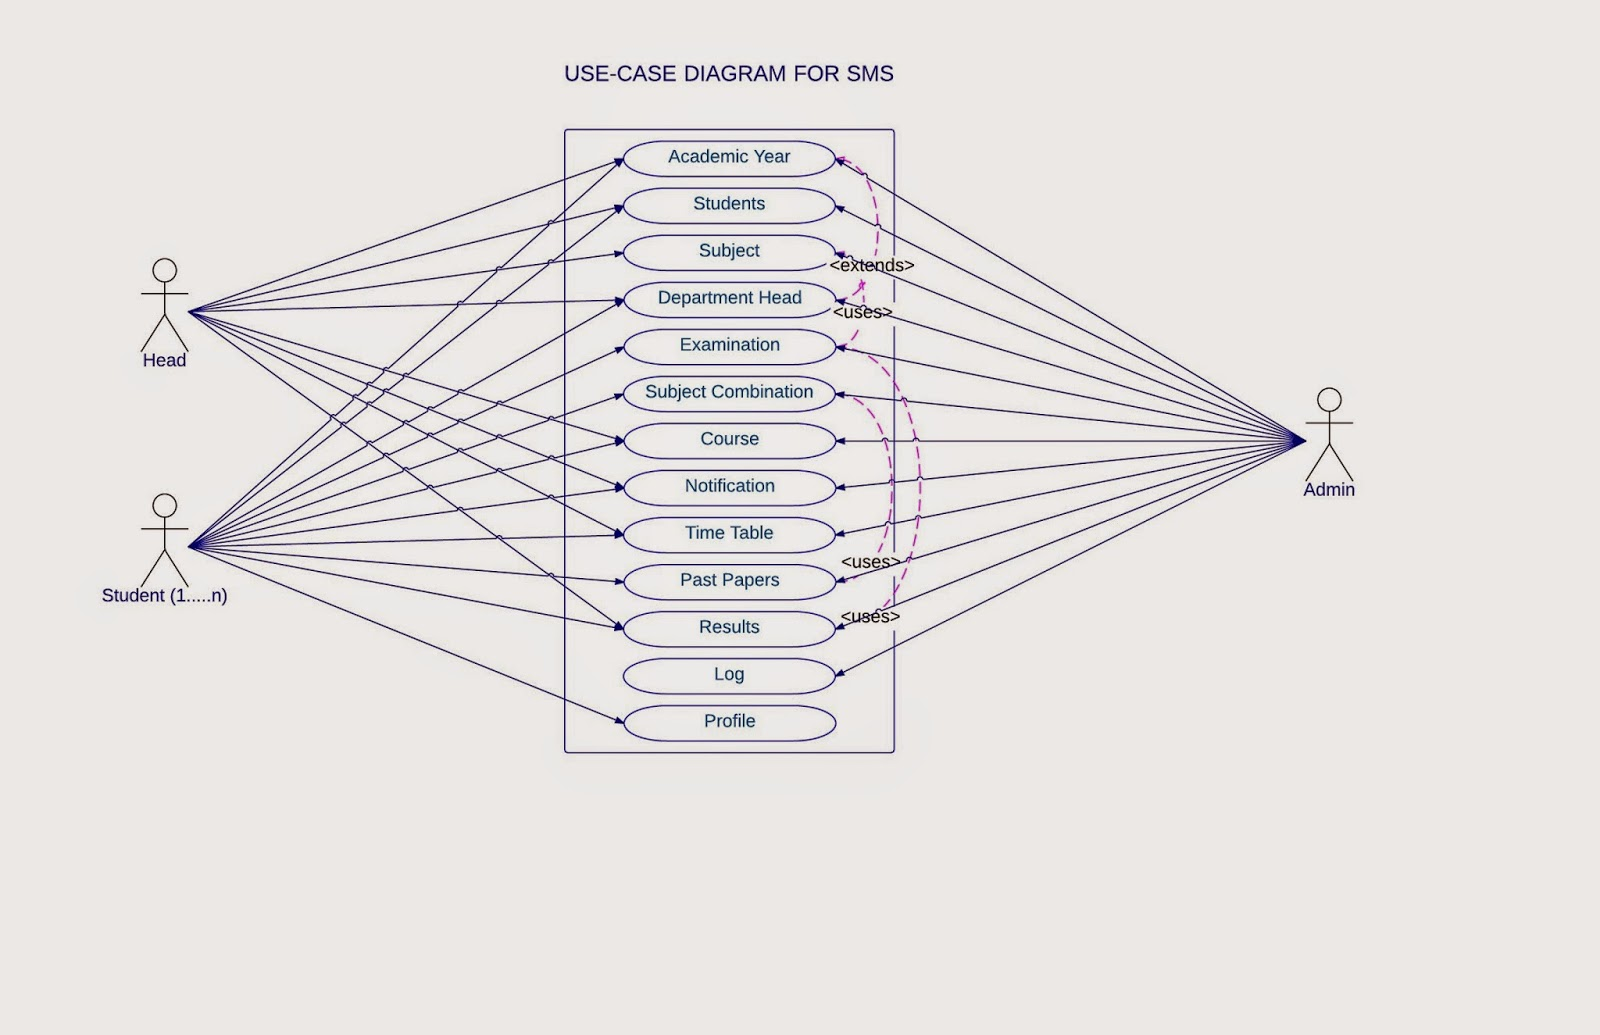 Student Management System Use Case Diagram For Sms